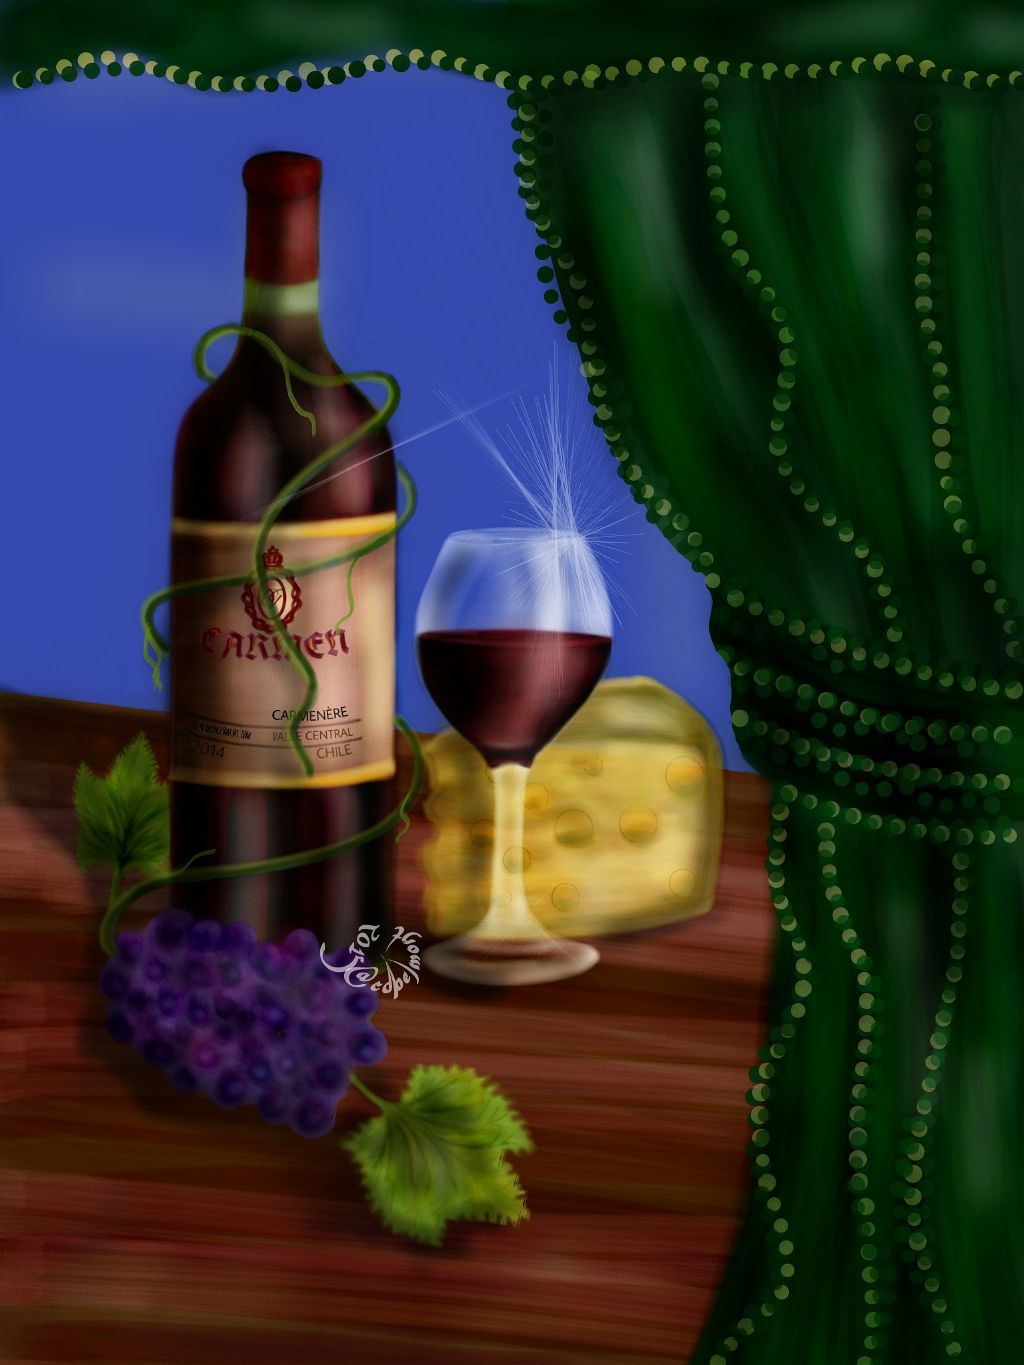 "Wine & co.  Drawn in PA and submitted to the #dcstilllife contest. If you like or repost, thanks! 177-3/464 #drawing #colorful #artistic #art #stilllife  ""The Carménère grape is a wine grape variety originally planted in the Médoc region of Bordeaux, France. A member of the Cabernet family of grapes, the name ""Carménère"" originates from the French word for crimson (carmin) which refers to the brilliant crimson colour of the autumn foliage prior to leaf-fall. Now rarely found in France, the world's largest area planted with this variety is in Chile in South America. In Chile, growers almost inadvertently preserved the grape variety during the last 150 years, due largely to its similarity to Merlot. In 1994, a researcher at Montpellier's school of Oenology found that ""an earlier-ripening vine was Bordeaux Carménère, not Merlot"". The Chilean Department of Agriculture officially recognized Carménère as a distinct variety in 1998."" (Source:  Wikipedia)"